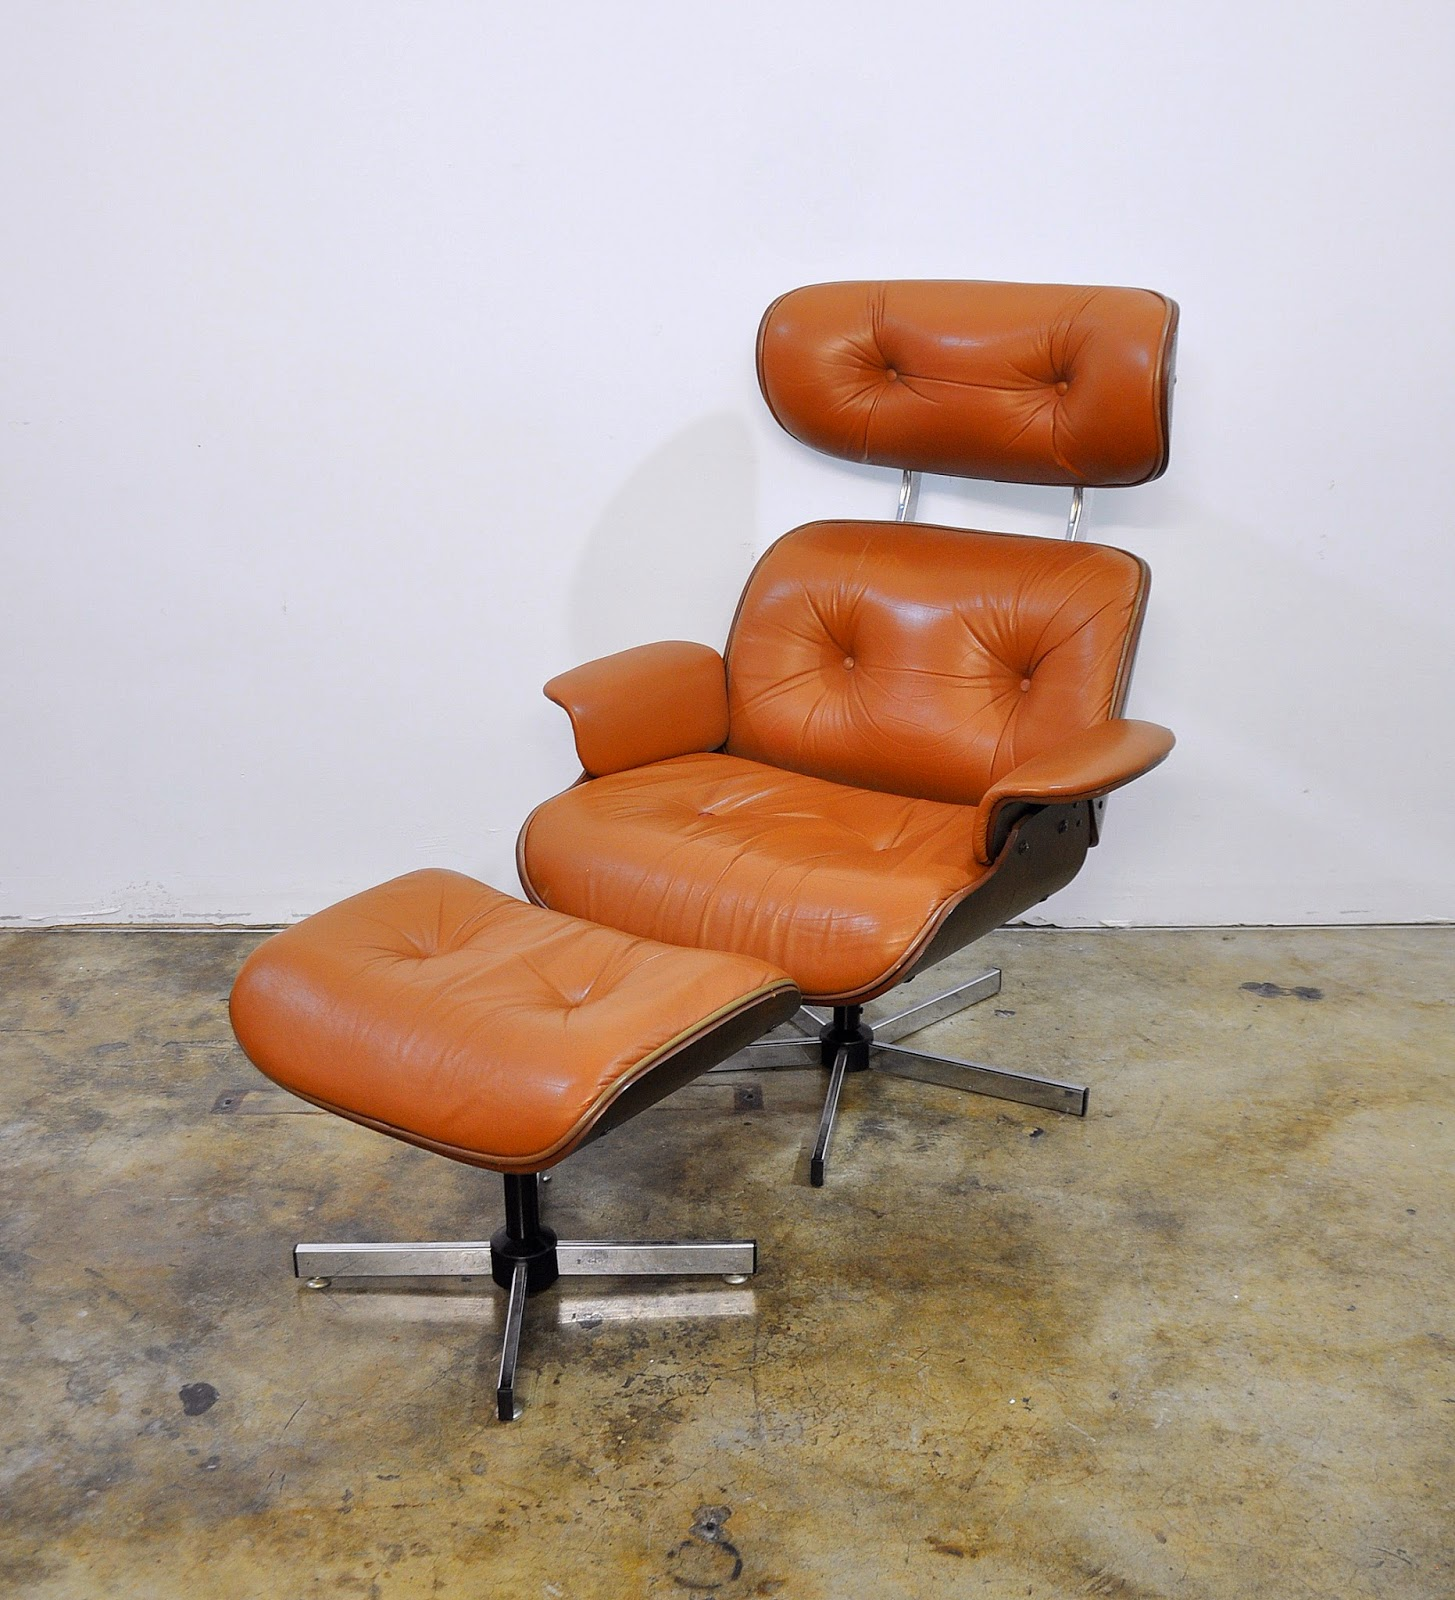 Selig Plycraft Lounge Chair Parts Folding For Bathroom Select Modern Eames Leather And Ottoman